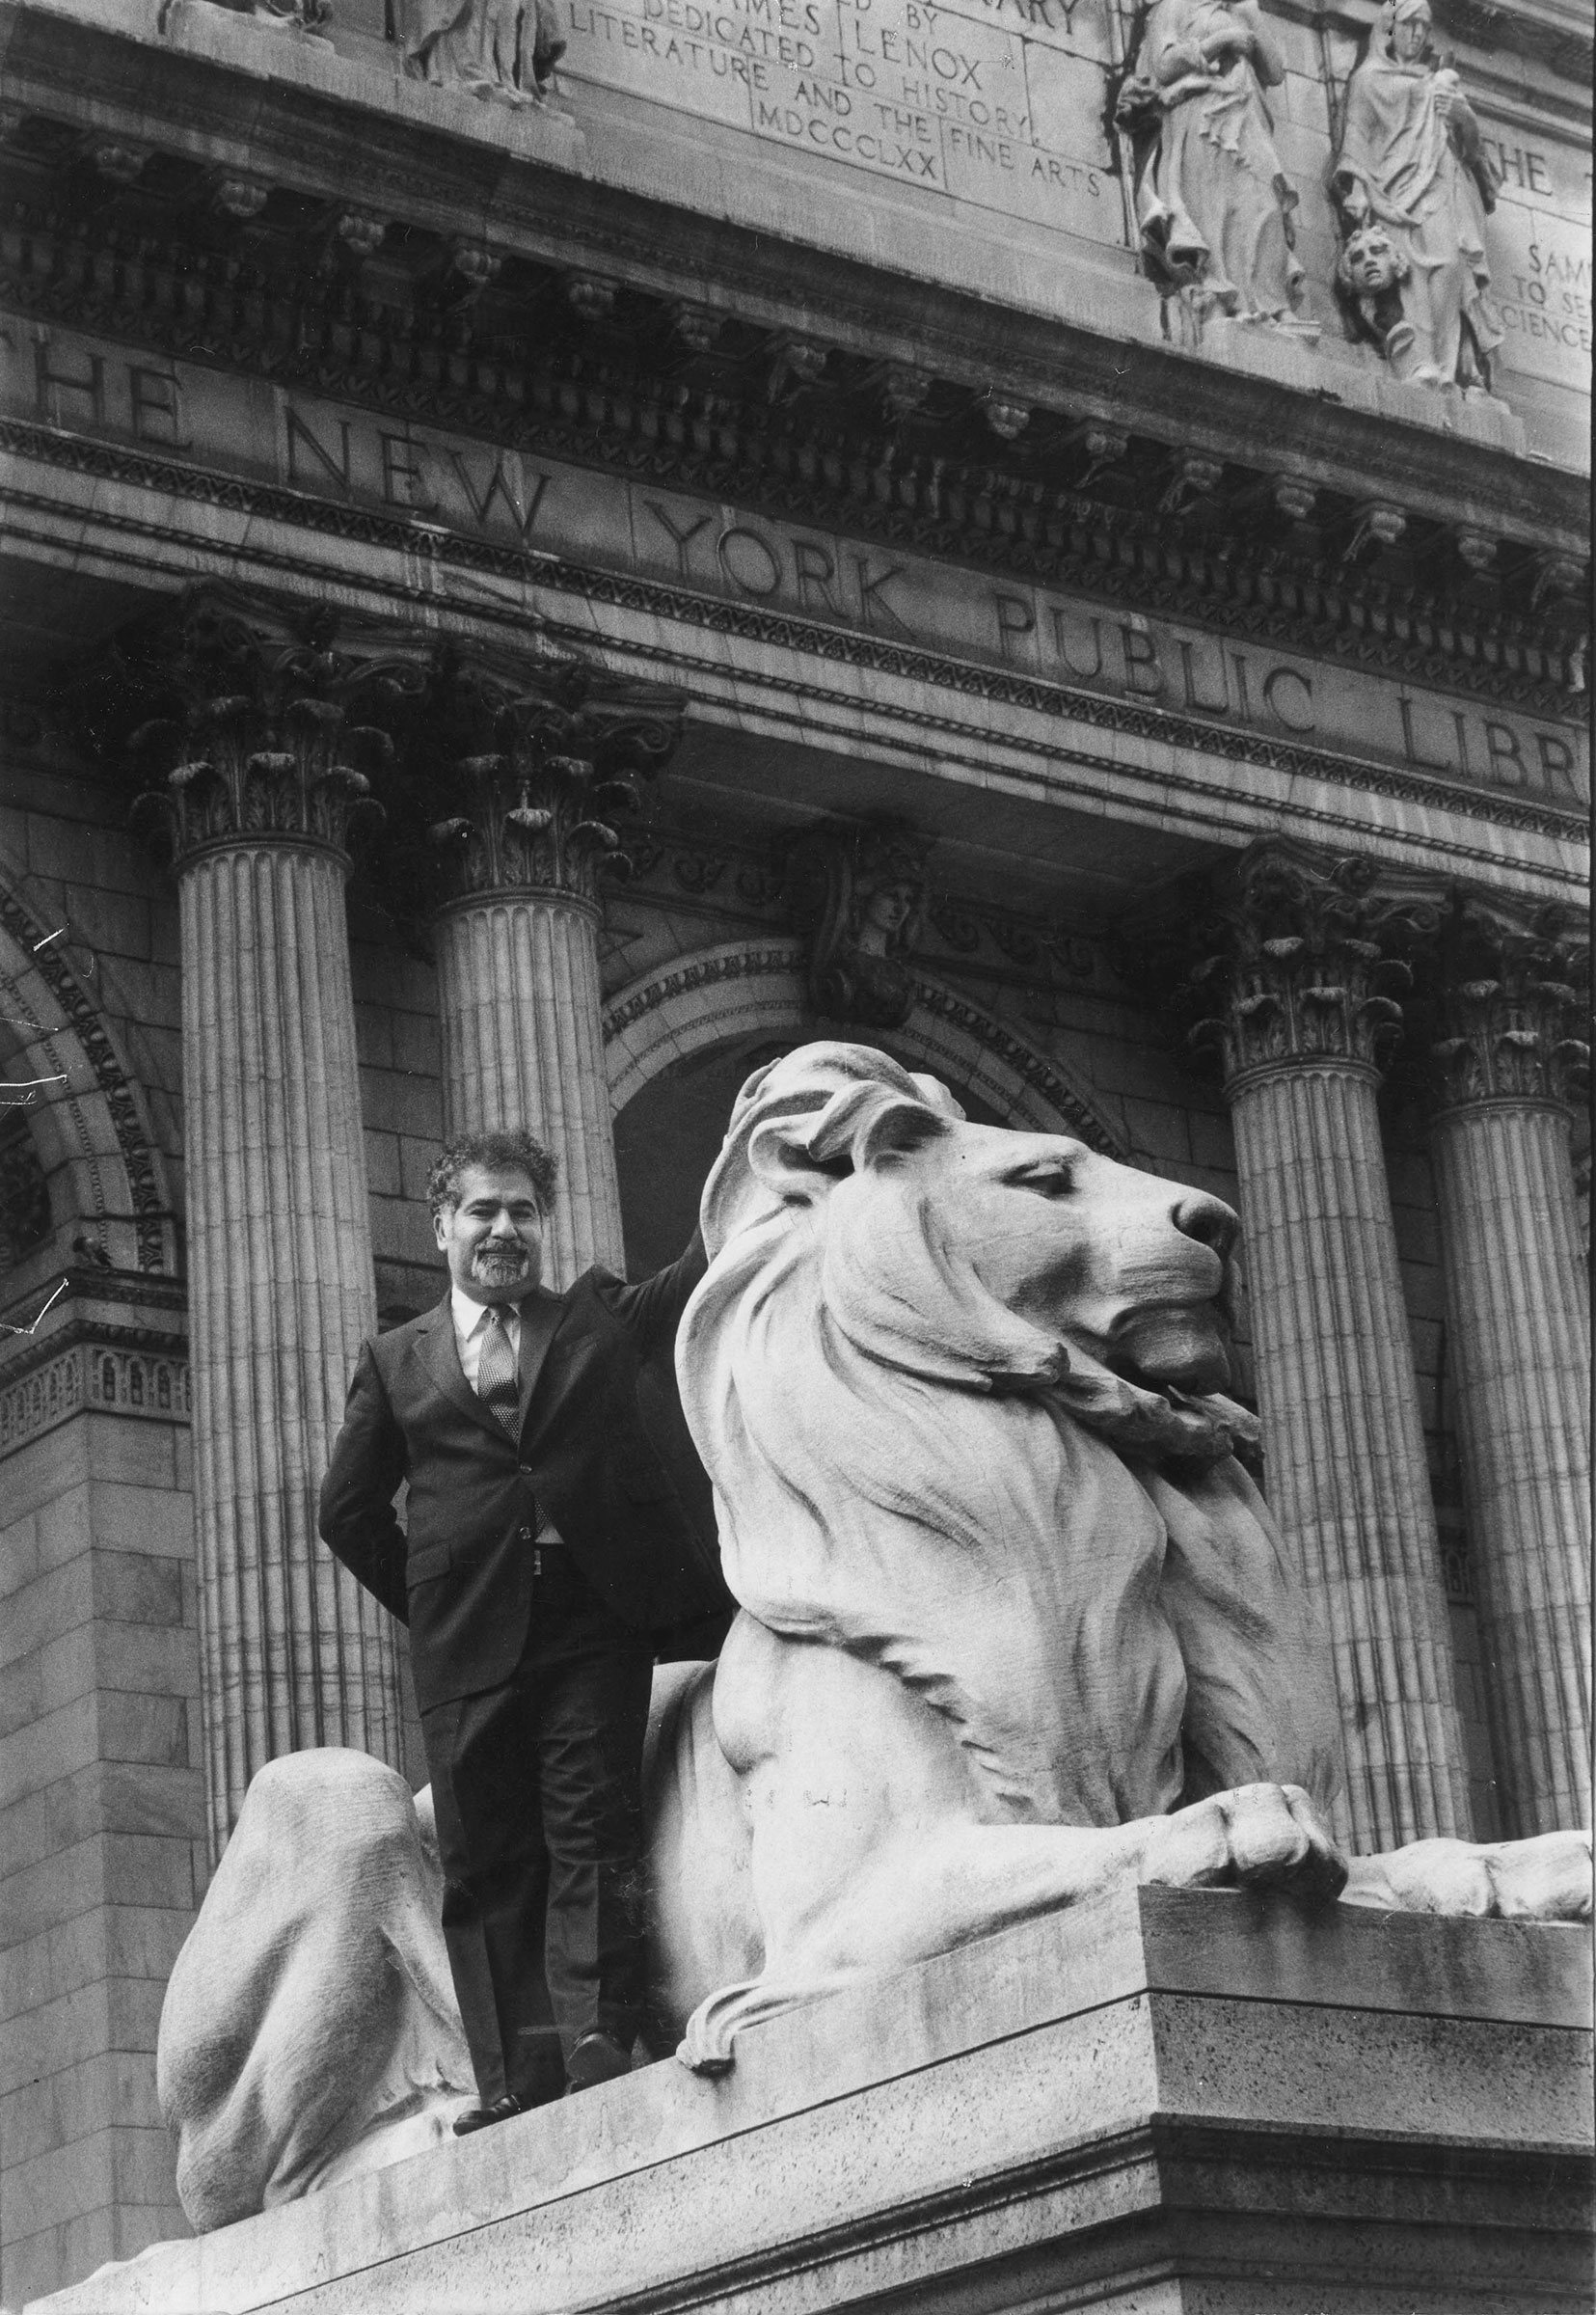 Vartan Gregorian outside the New York Pubic Library on Sept. 11, 1981.